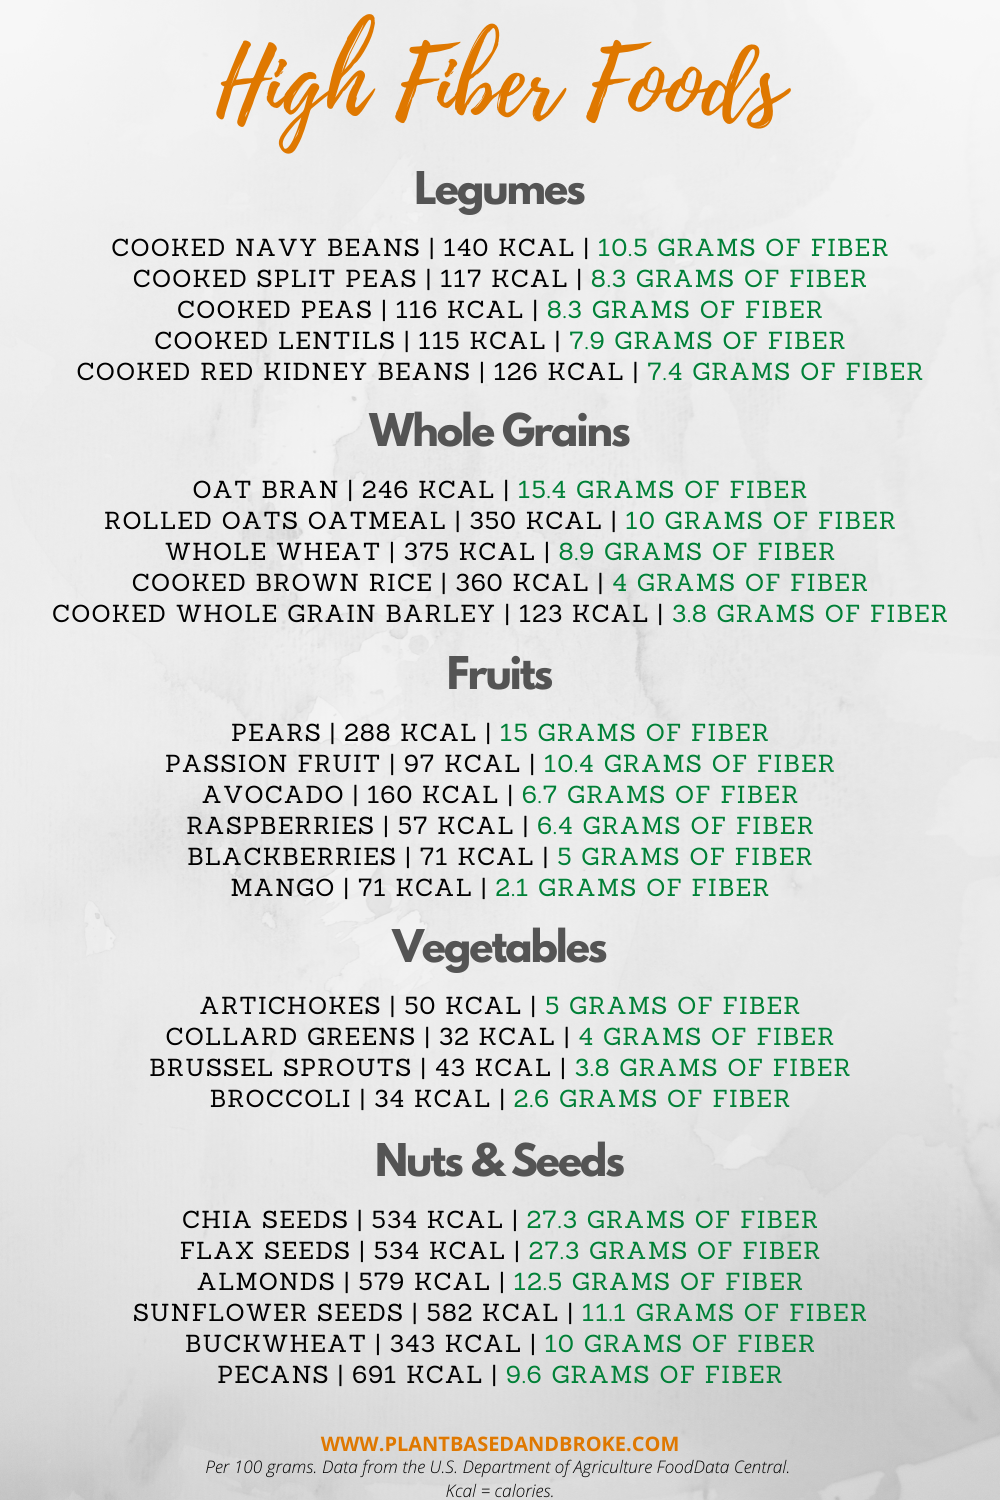 High FIber Foods chart with nutrition information for legumes, whole grains, fruits, vegetables, nuts & seeds.